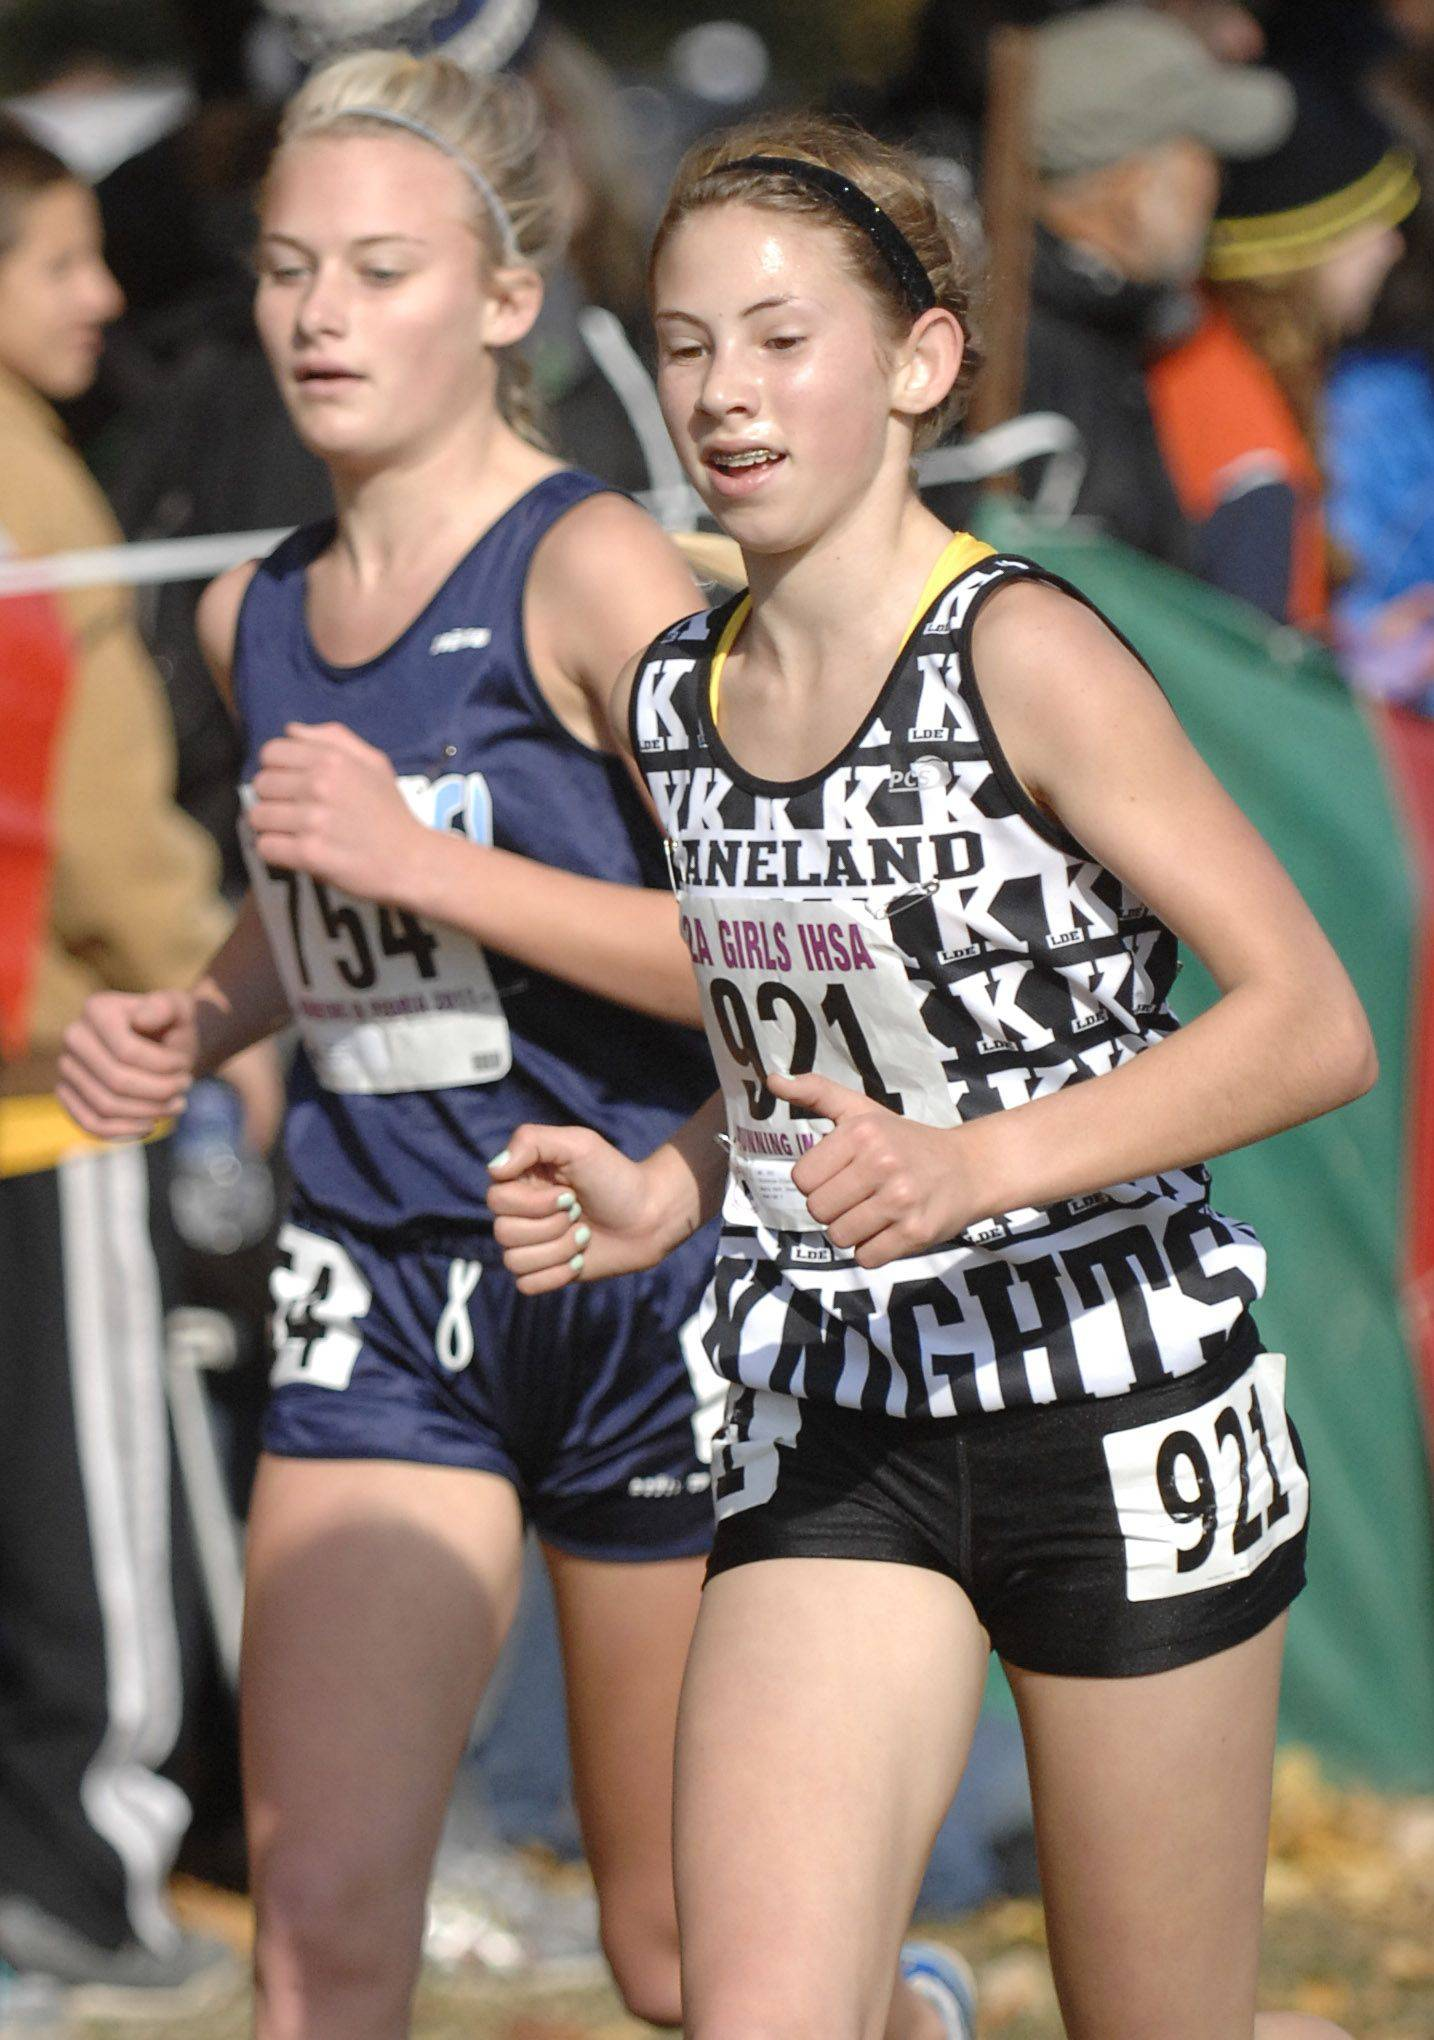 Kaneland's Victoria Clinton takes 11th place with a time of 17:41 in the 2A state cross country final.